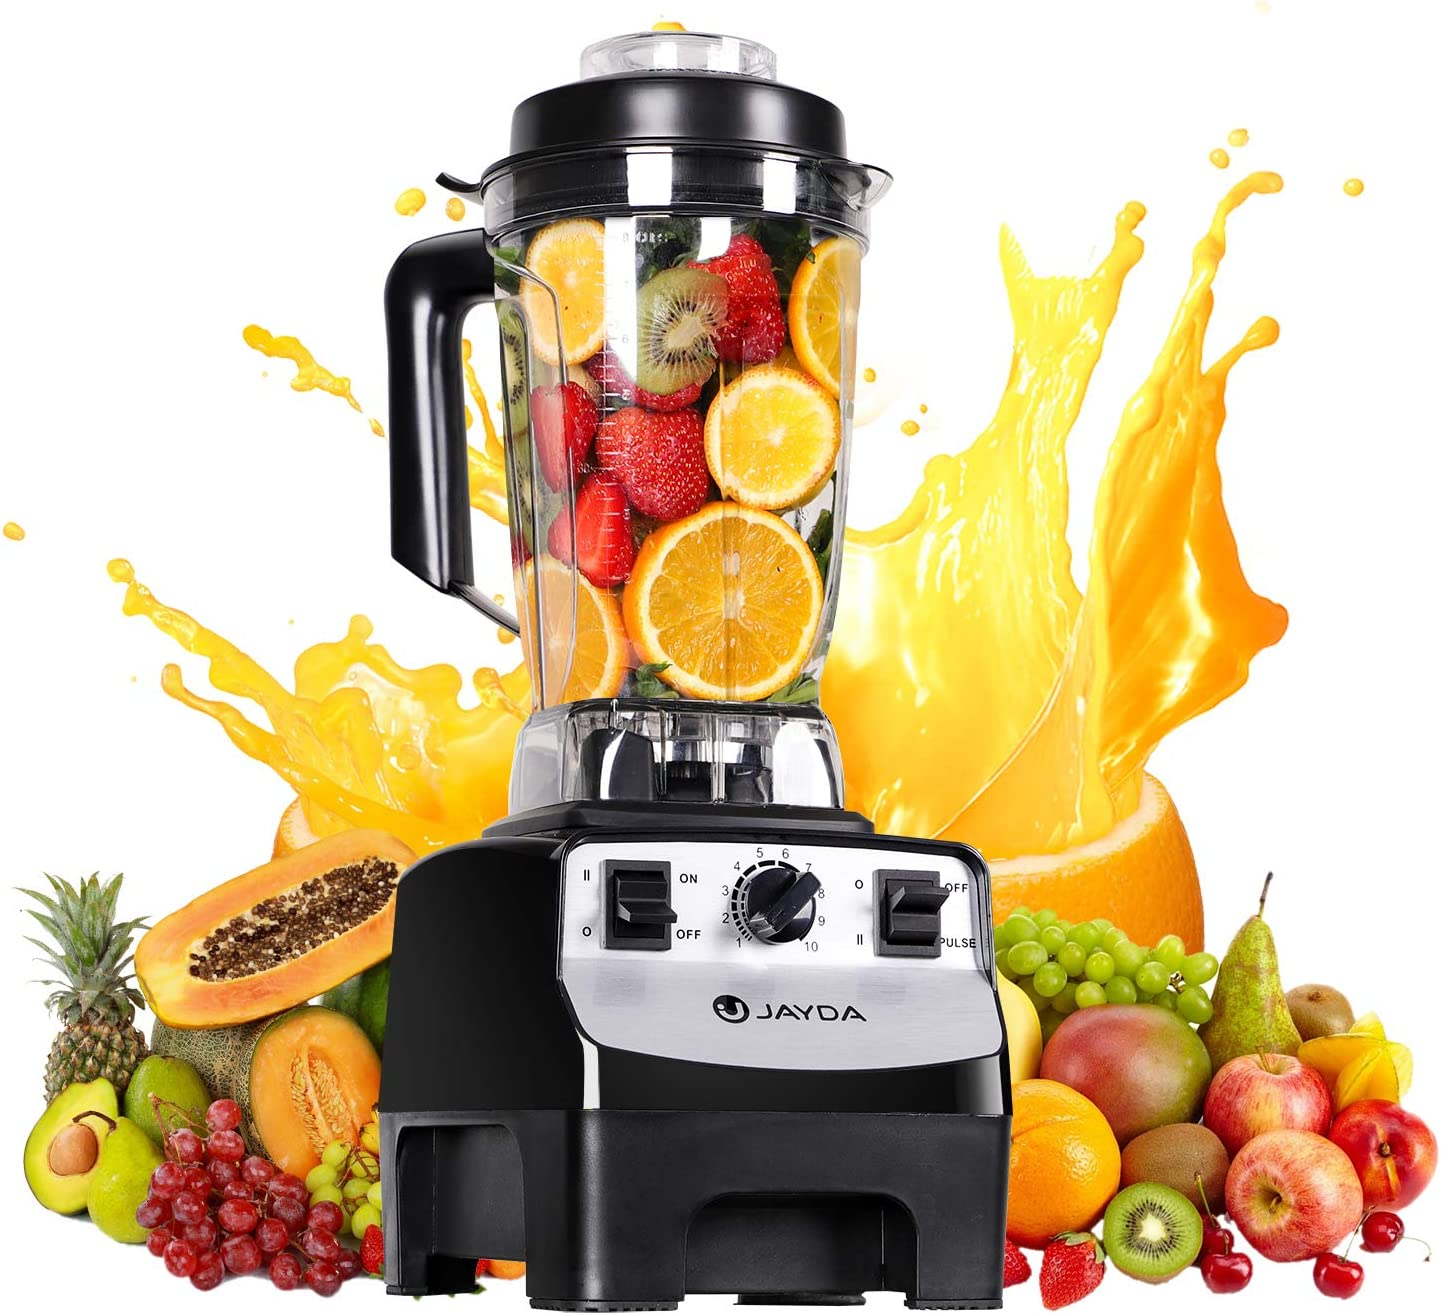 JAYDA 68 OZ Professional Countertop Blender, 1450W Kitchen Cooking Blender, BPA Free Jar, 10-Speed Settings for Smoothie Ice and Frozen Fruit,Black and Stainless Steel